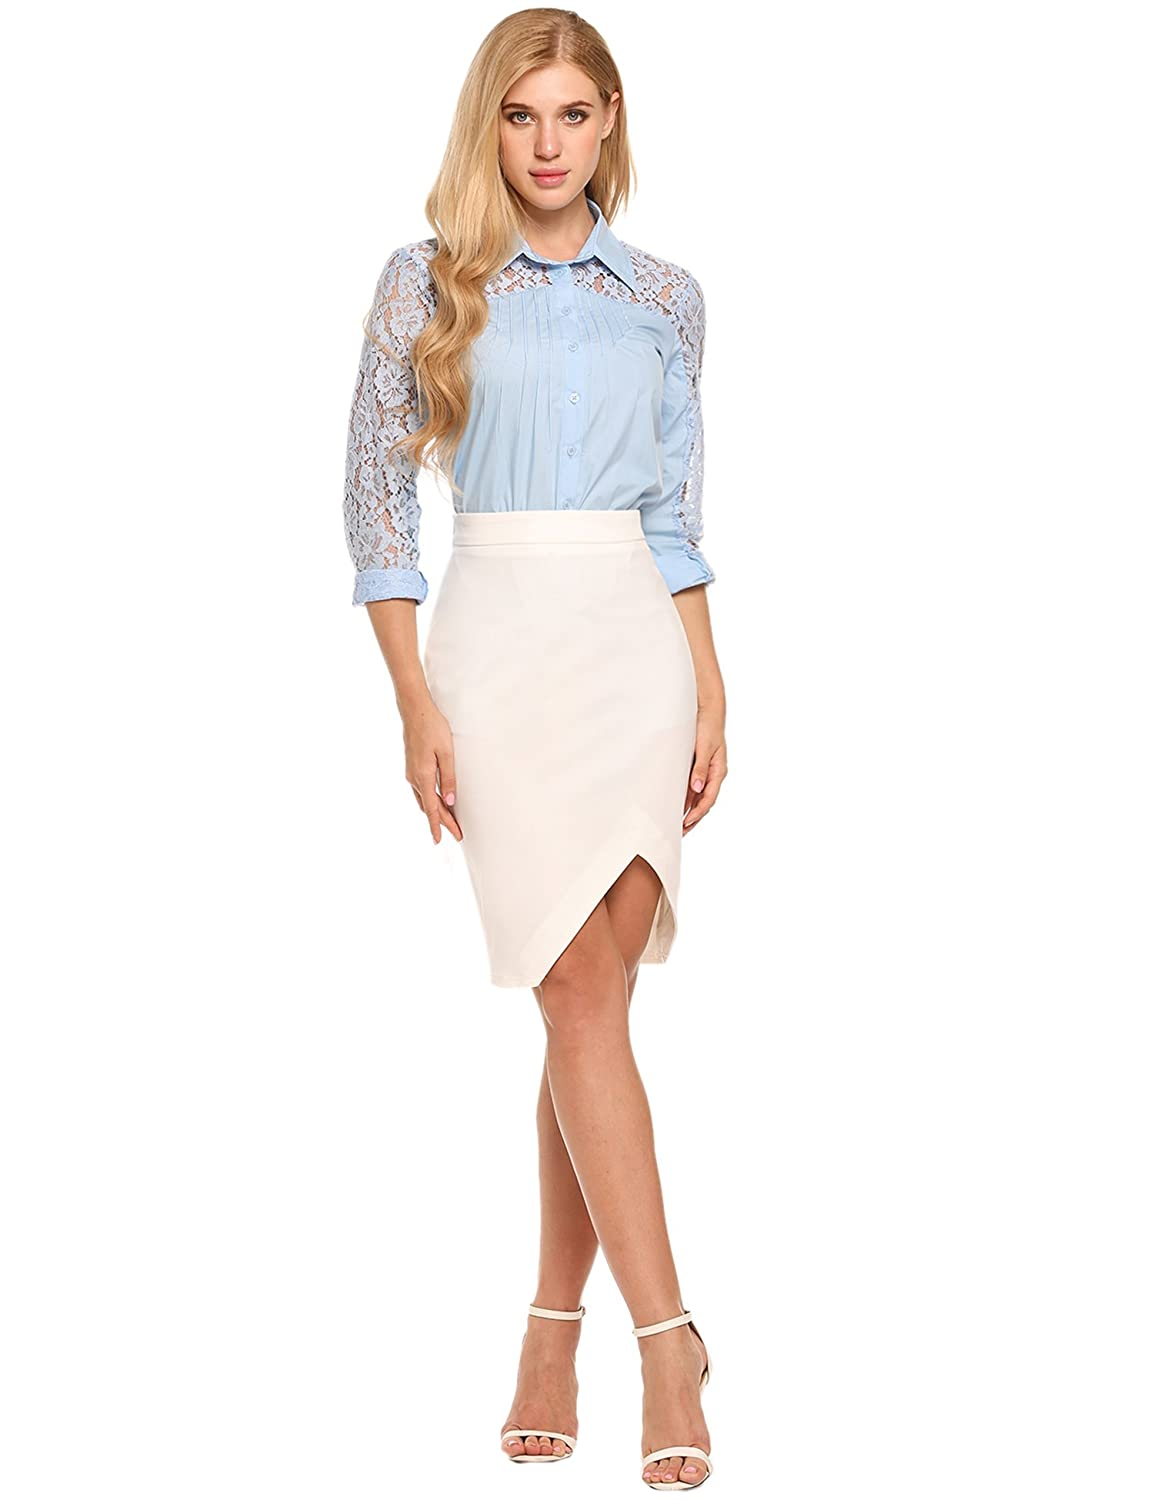 c1bdeaa69 Zeagoo Women's High Waist Stretch Bodycon Pencil Skirt for Office Wear Plus  Size Casual Skirt: Amazon.co.uk: Clothing